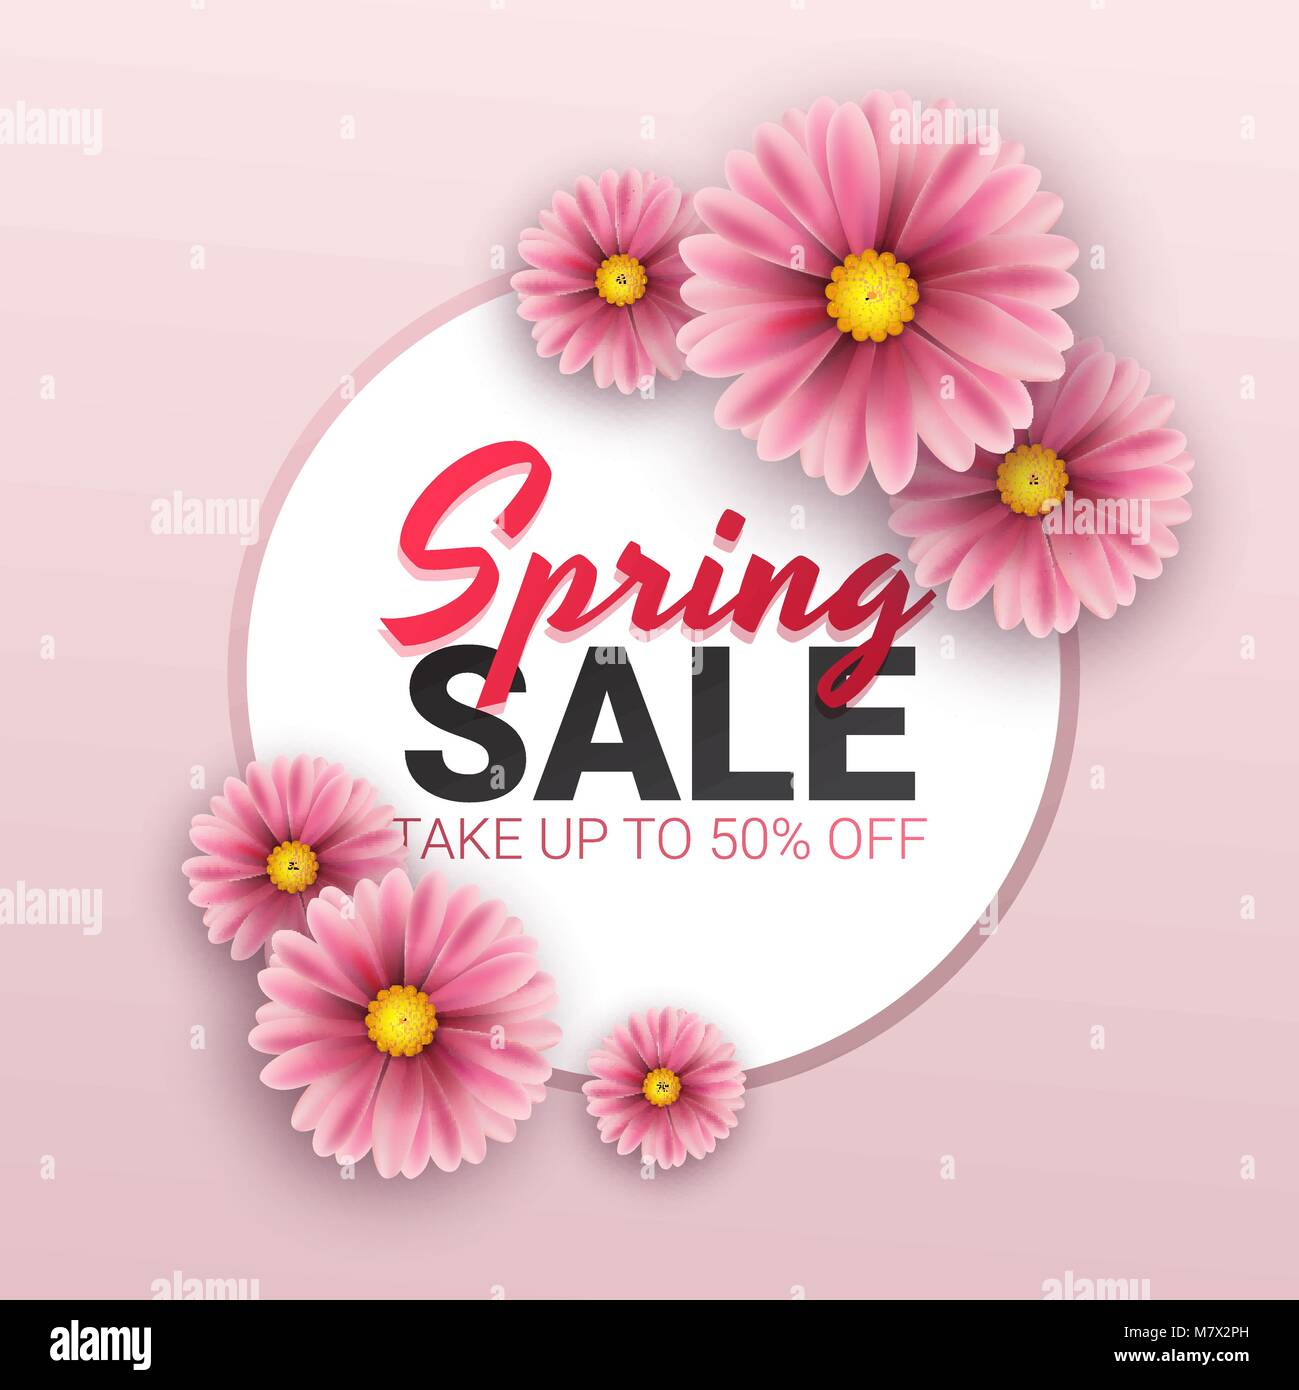 spring sale floral advertizing poster board banner with realistic